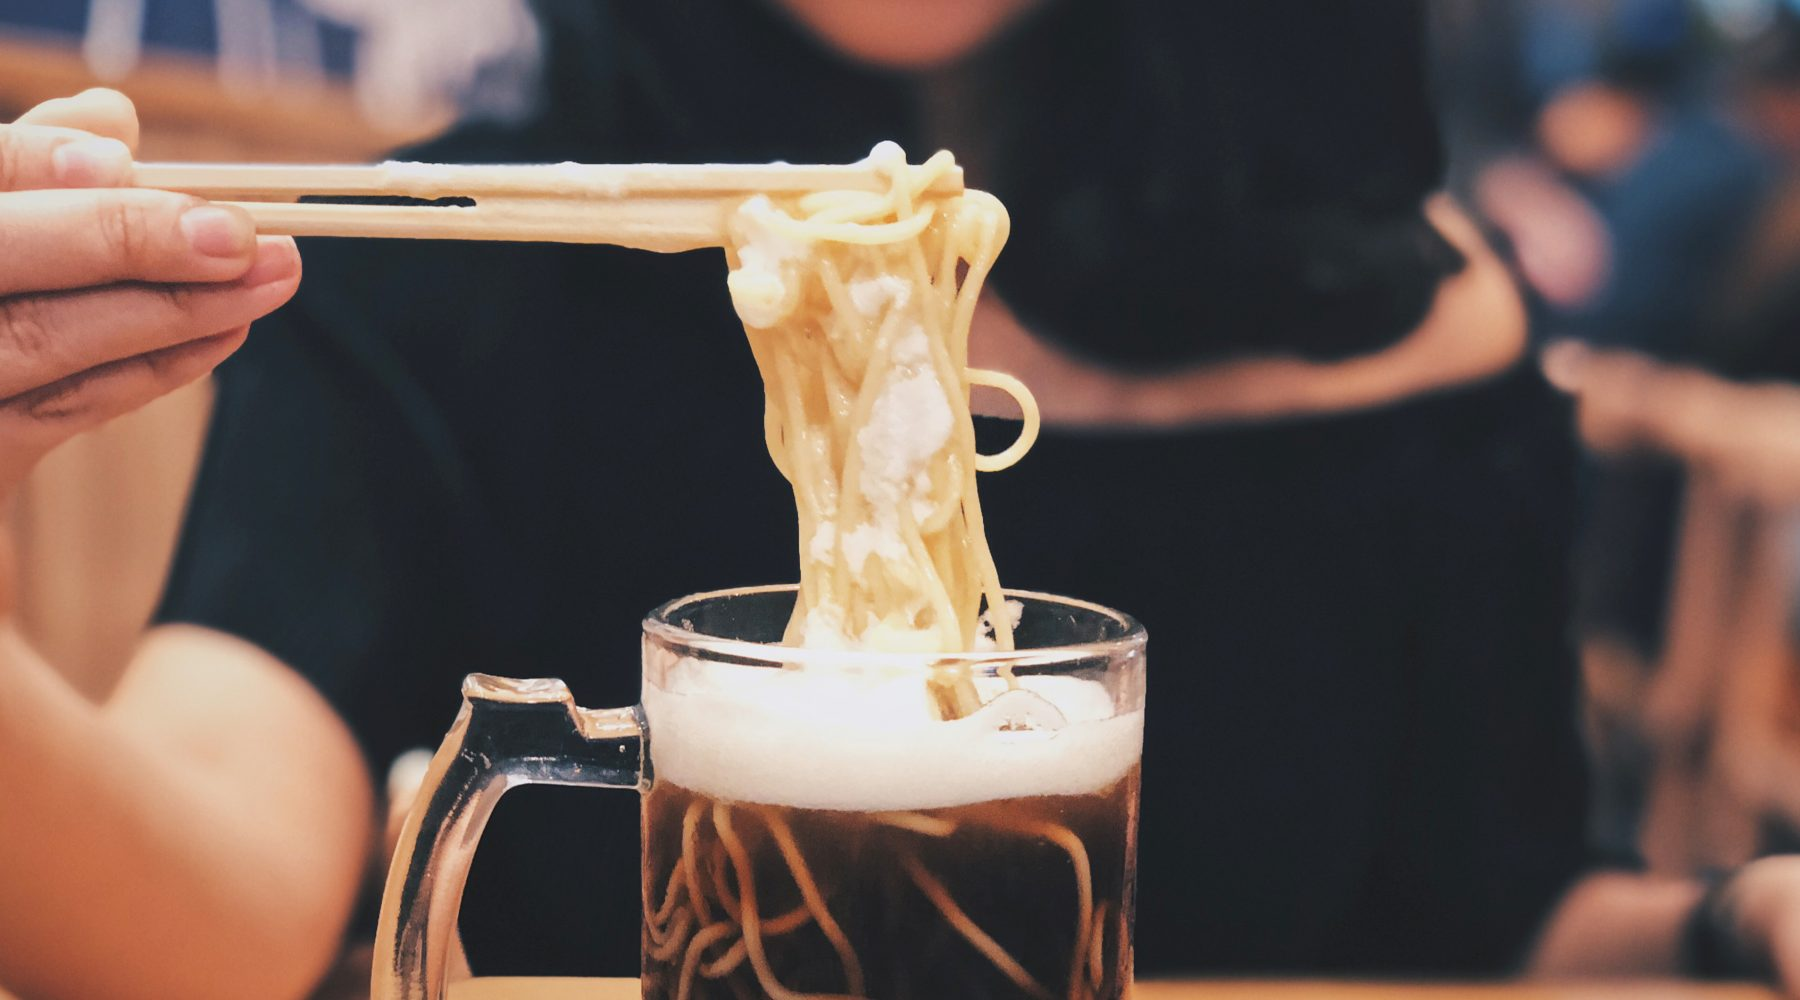 You Can Now Get Beer Ramen at These Restaurants in Canada